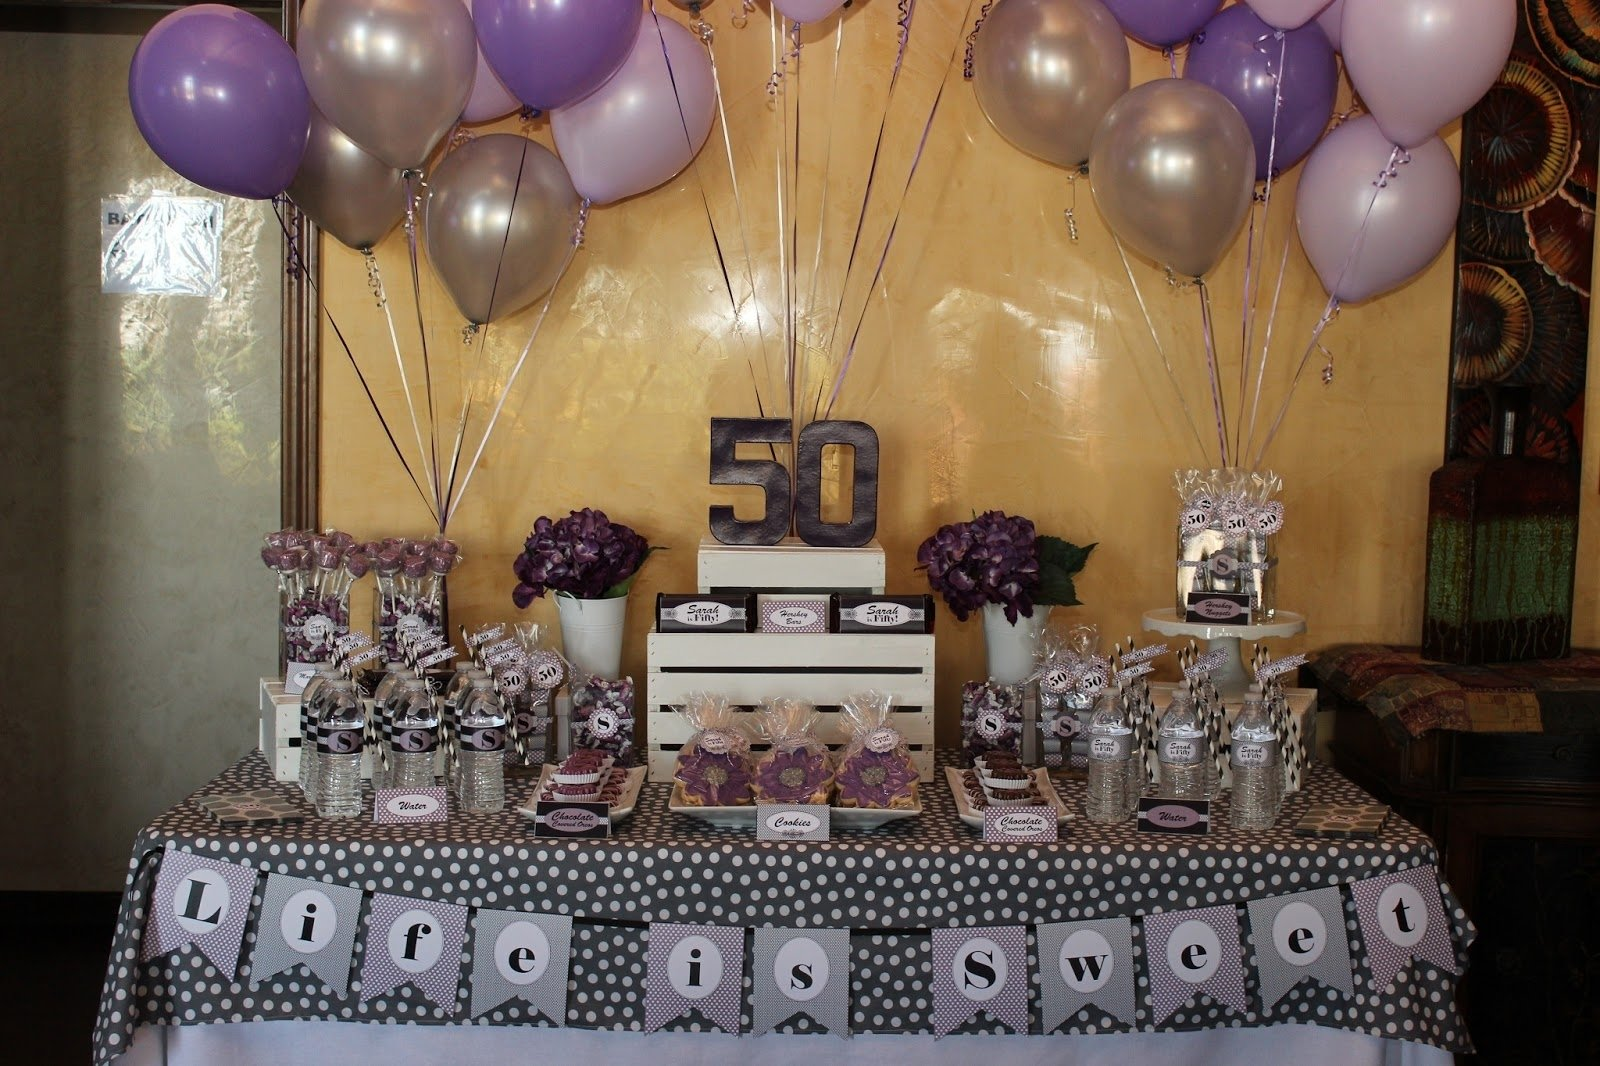 10 Attractive Surprise Birthday Party Ideas For Adults the sugar bee bungalow party bee sarahs 50th birthday dessert table 2 2020